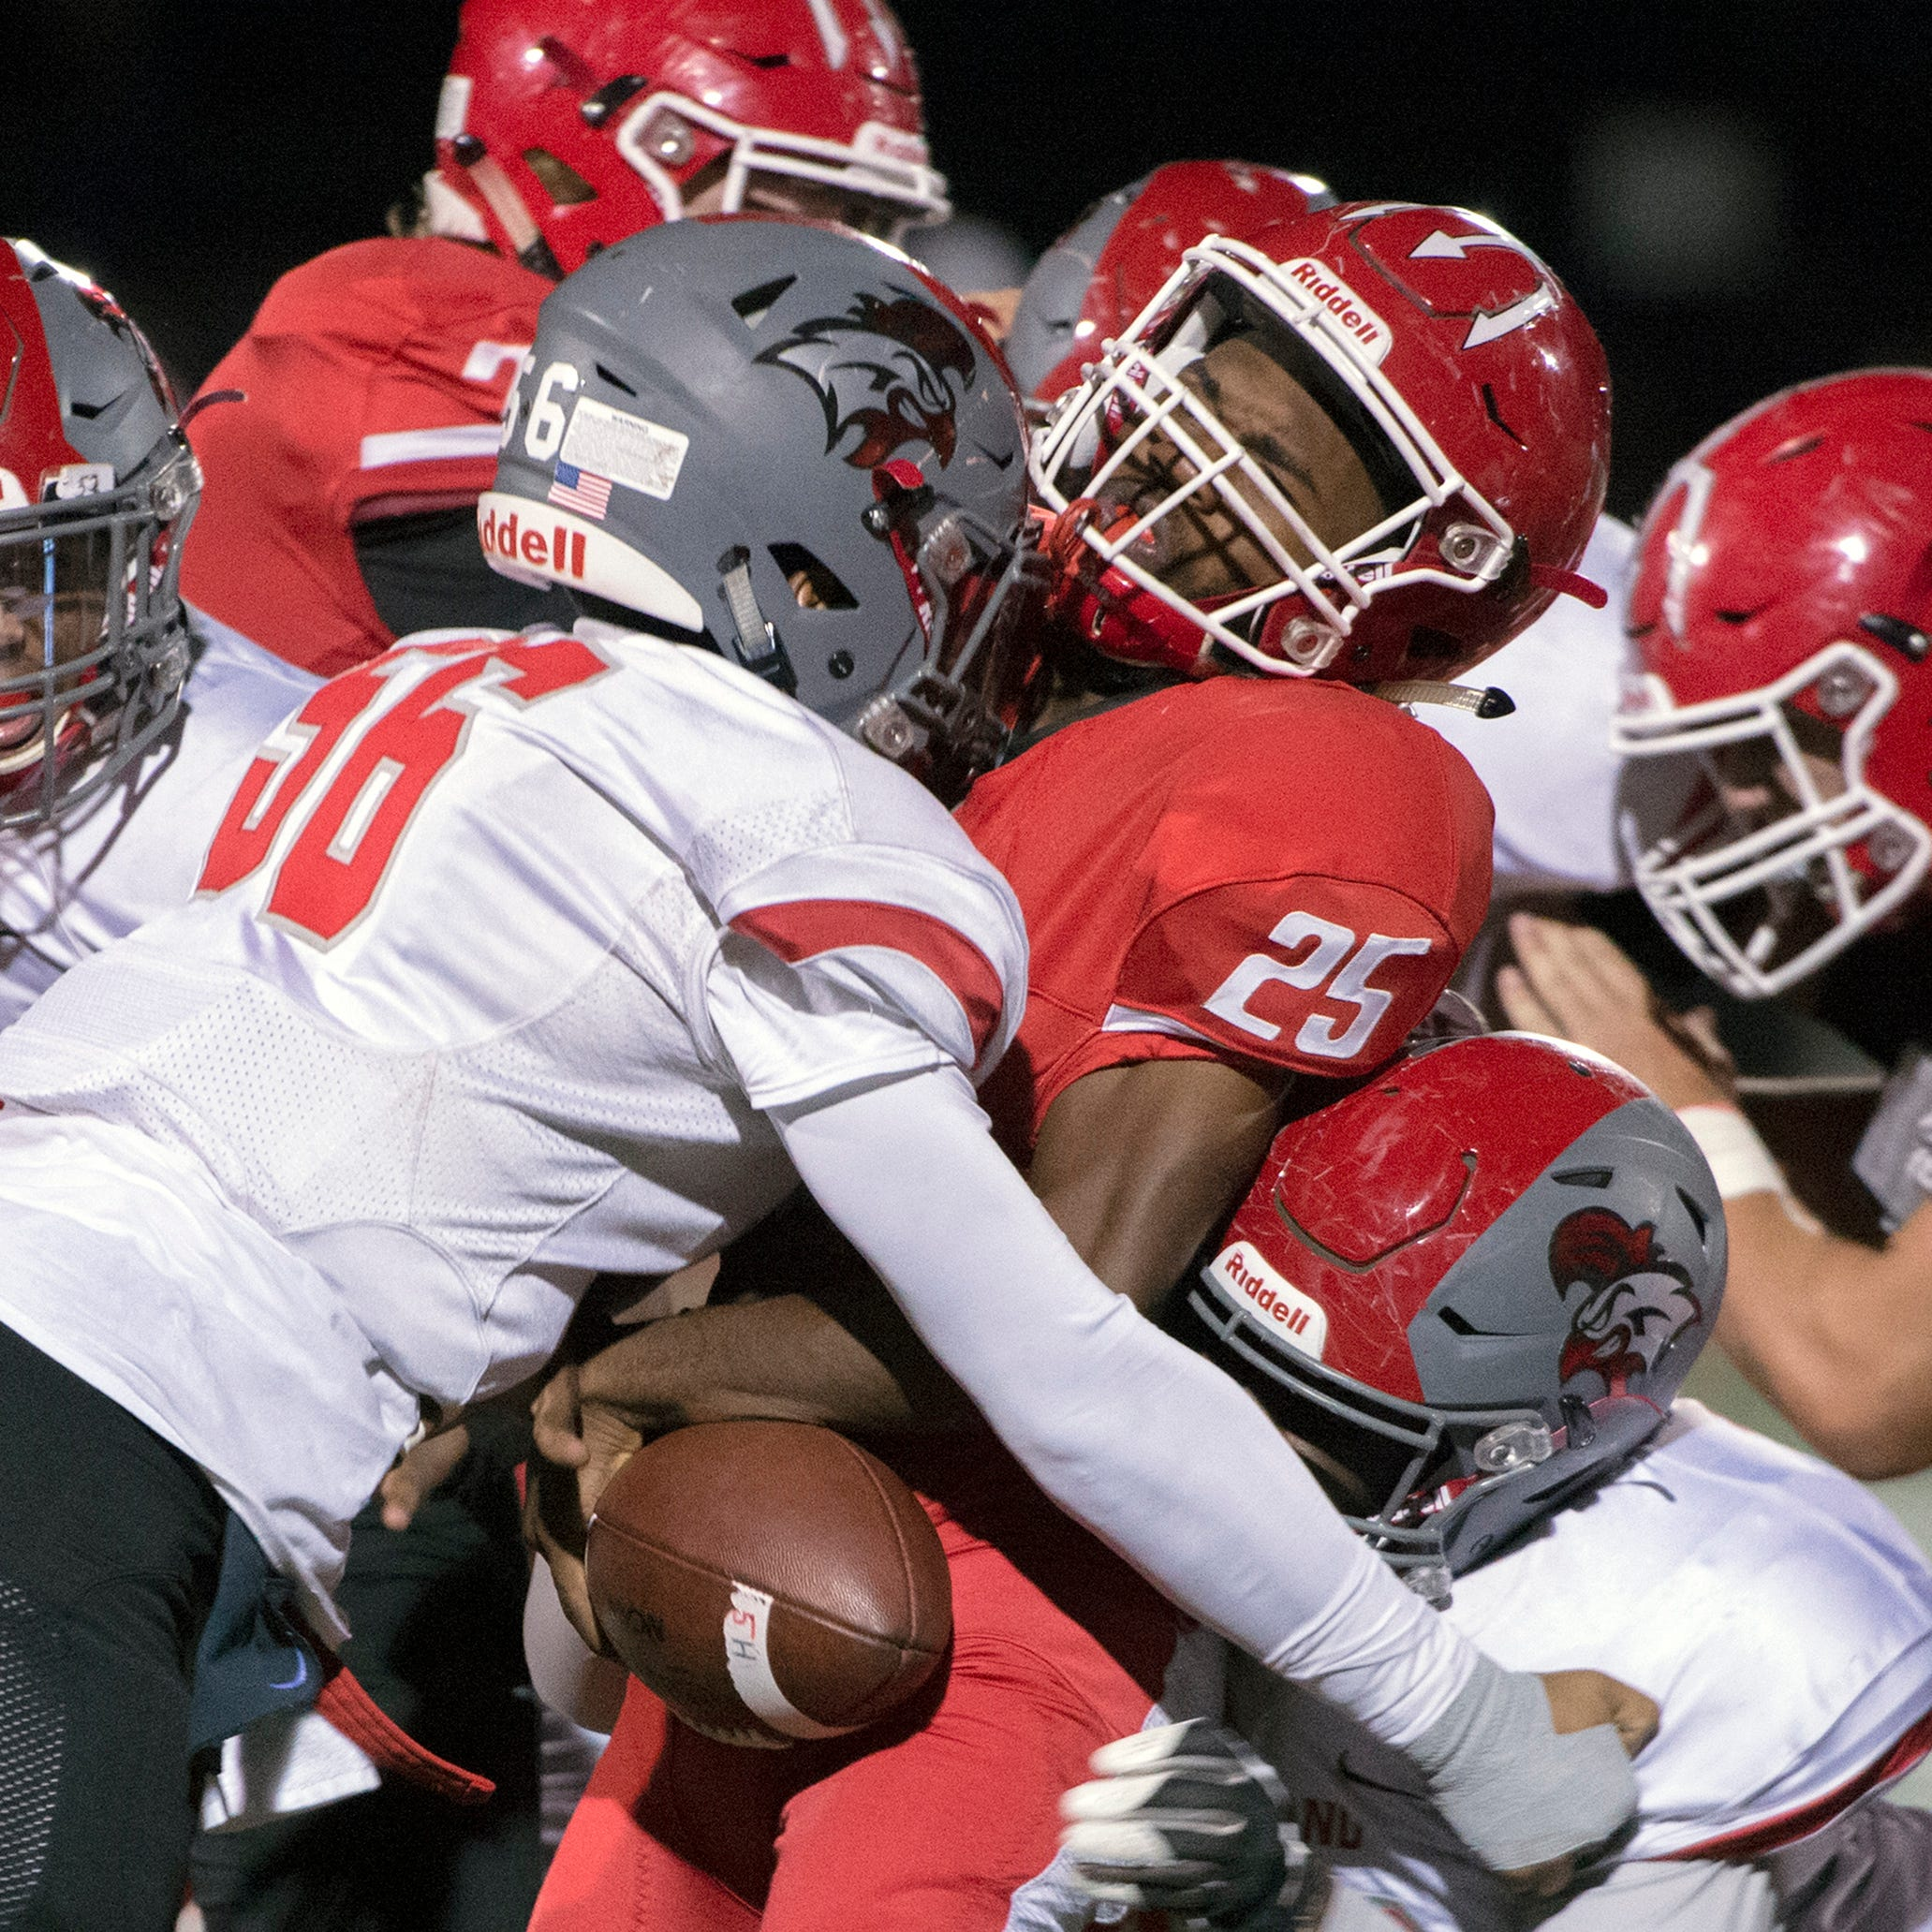 H.S. football: Vineland fighting its way through rough stretch